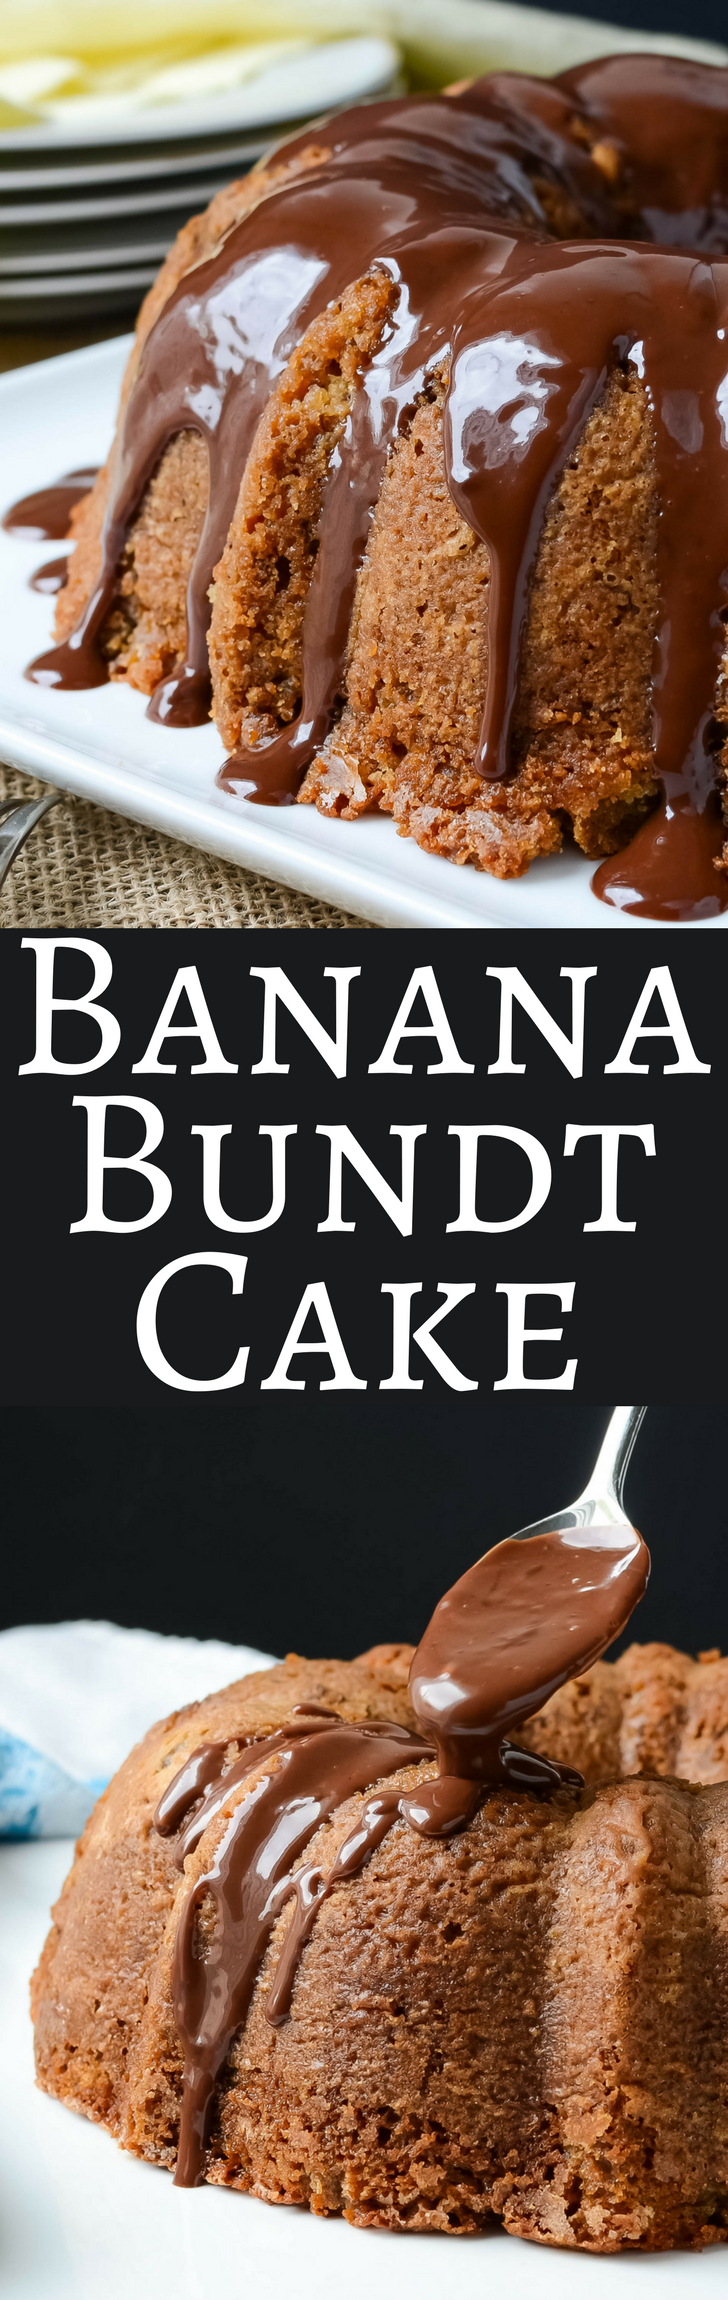 This easy recipe makes a super moist Banana Bundt Cake with a deep, dark chocolate ganache!  There won't be leftovers!